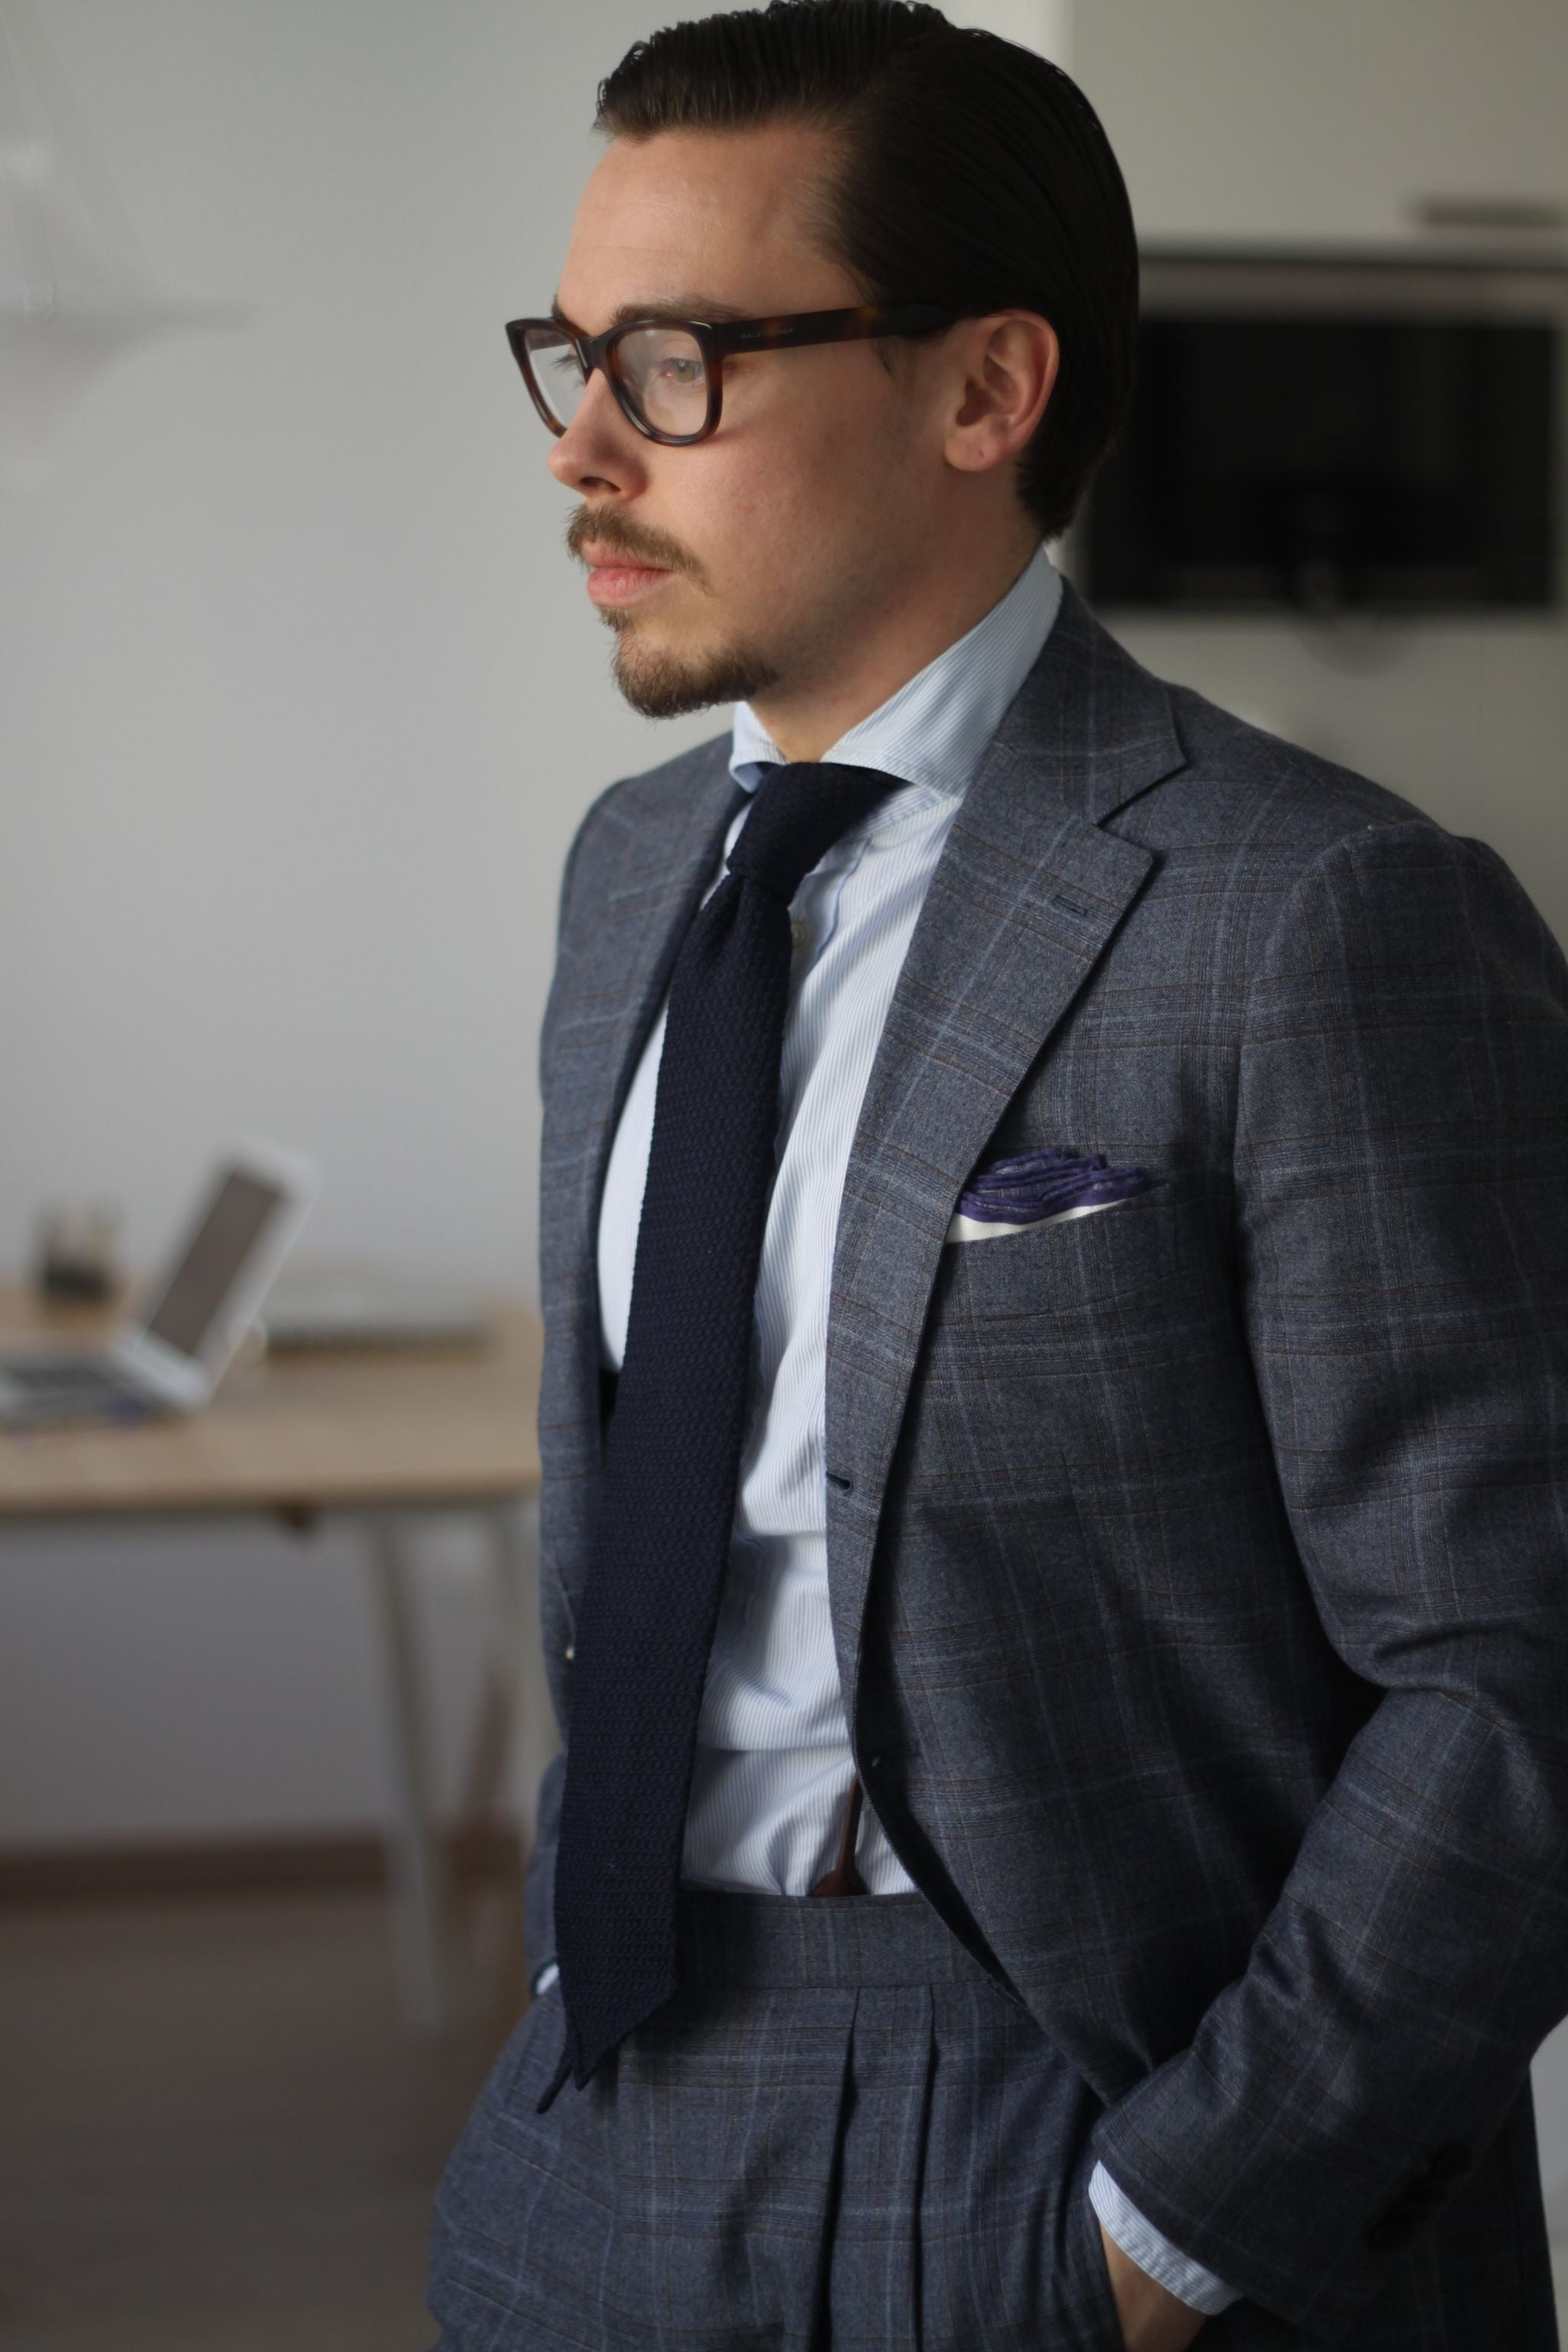 Gray suit with dark blue grenadine tie